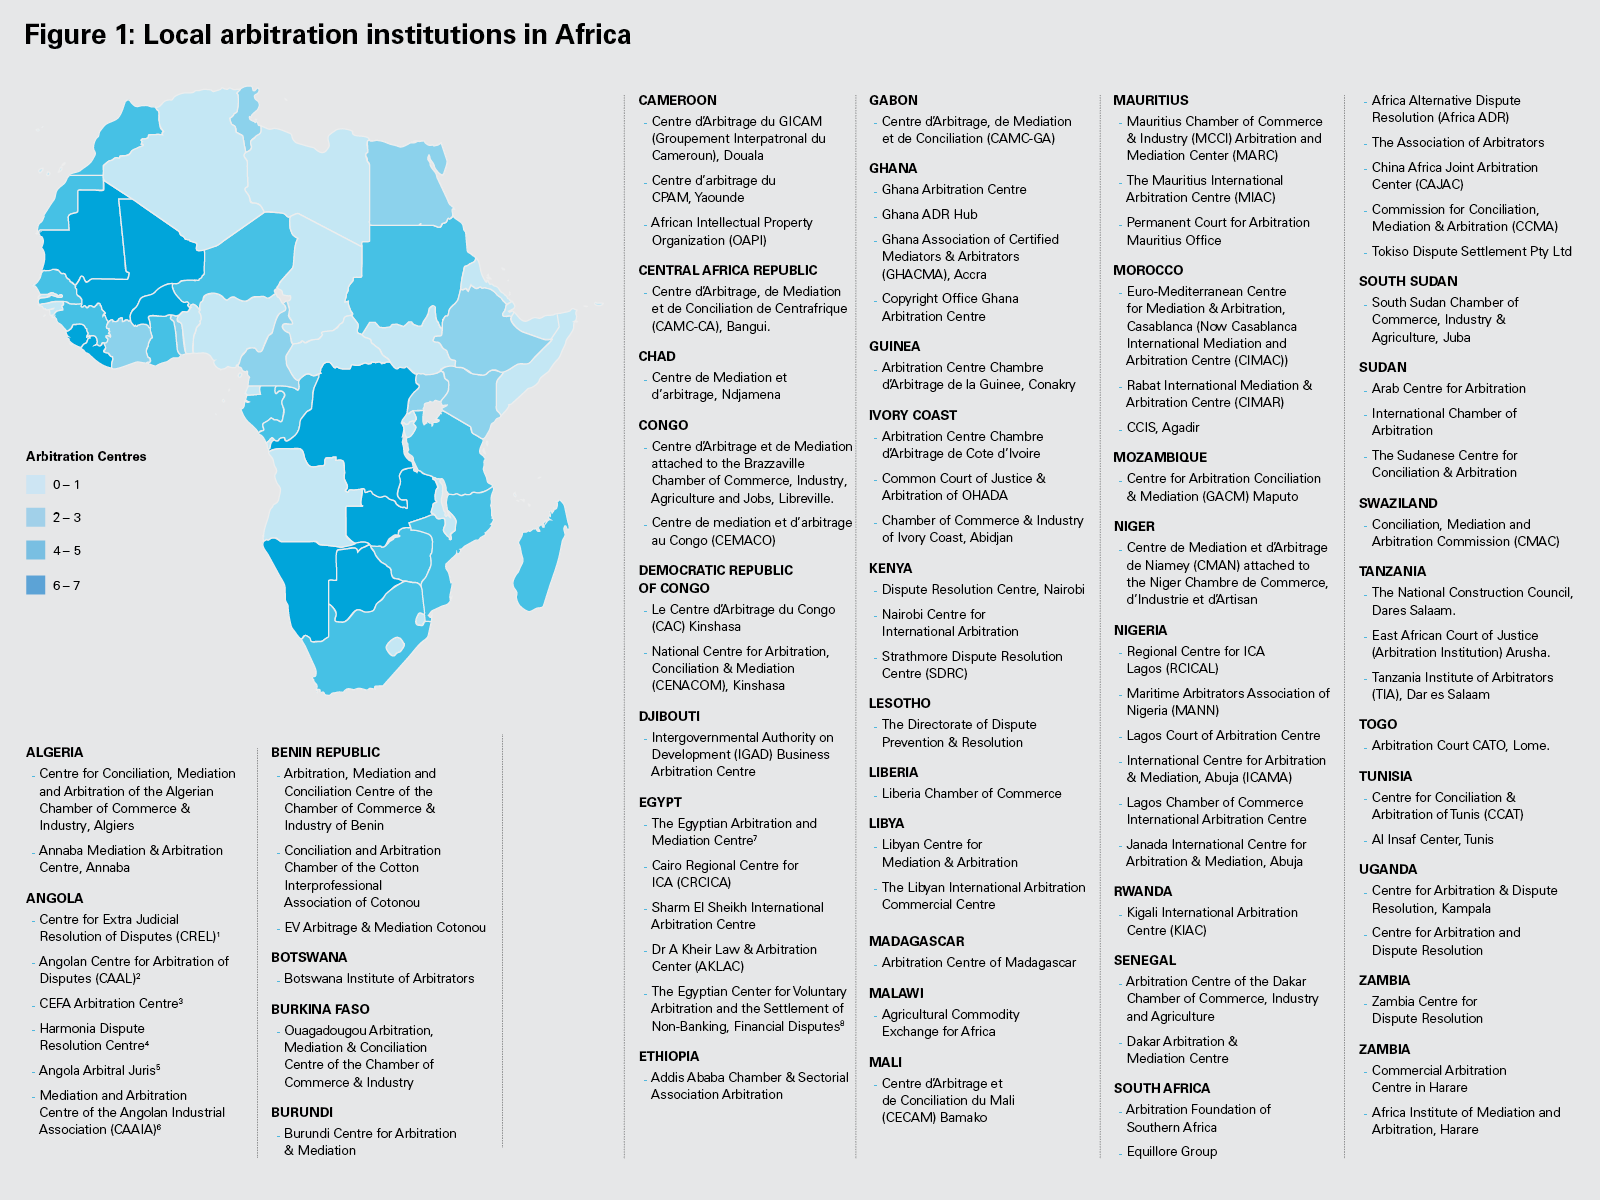 Figure 1: Local arbitration institutions in Africa (PNG)